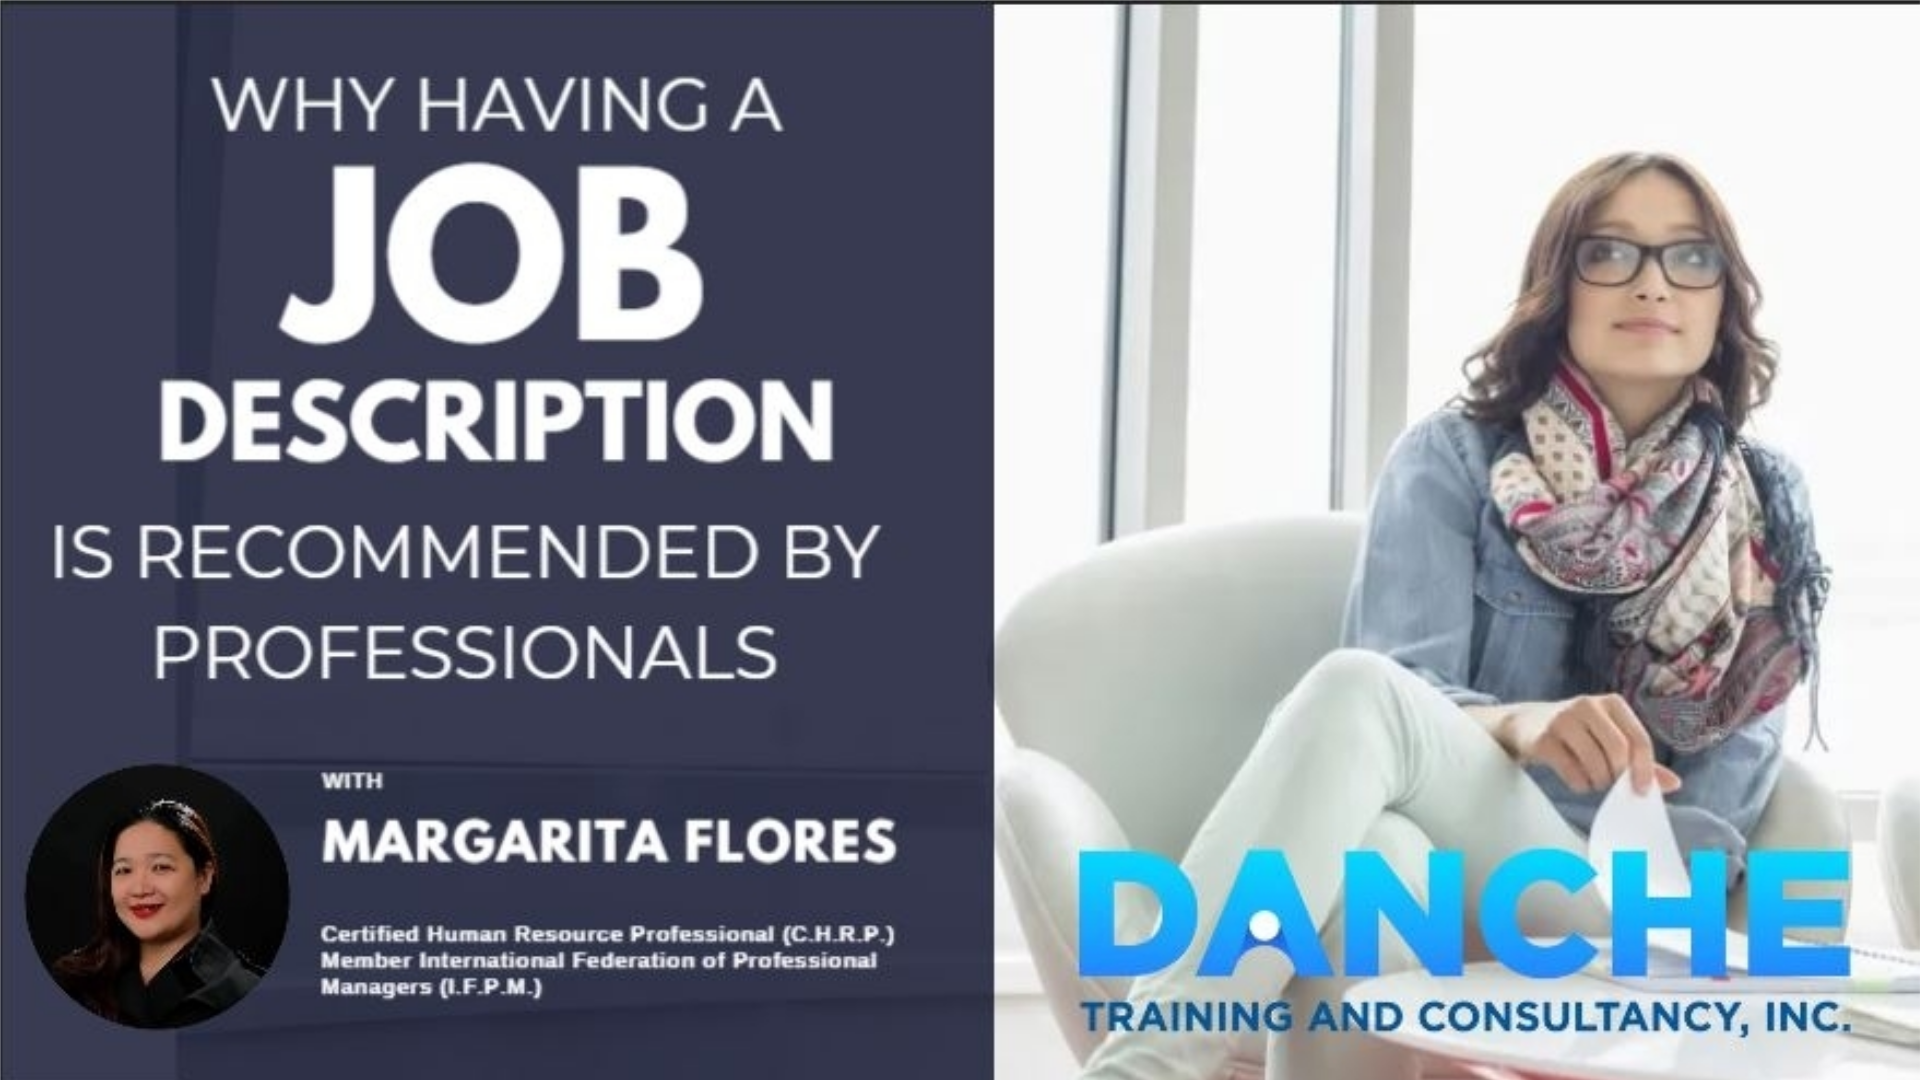 Why having a Job Description is recommended by professionals